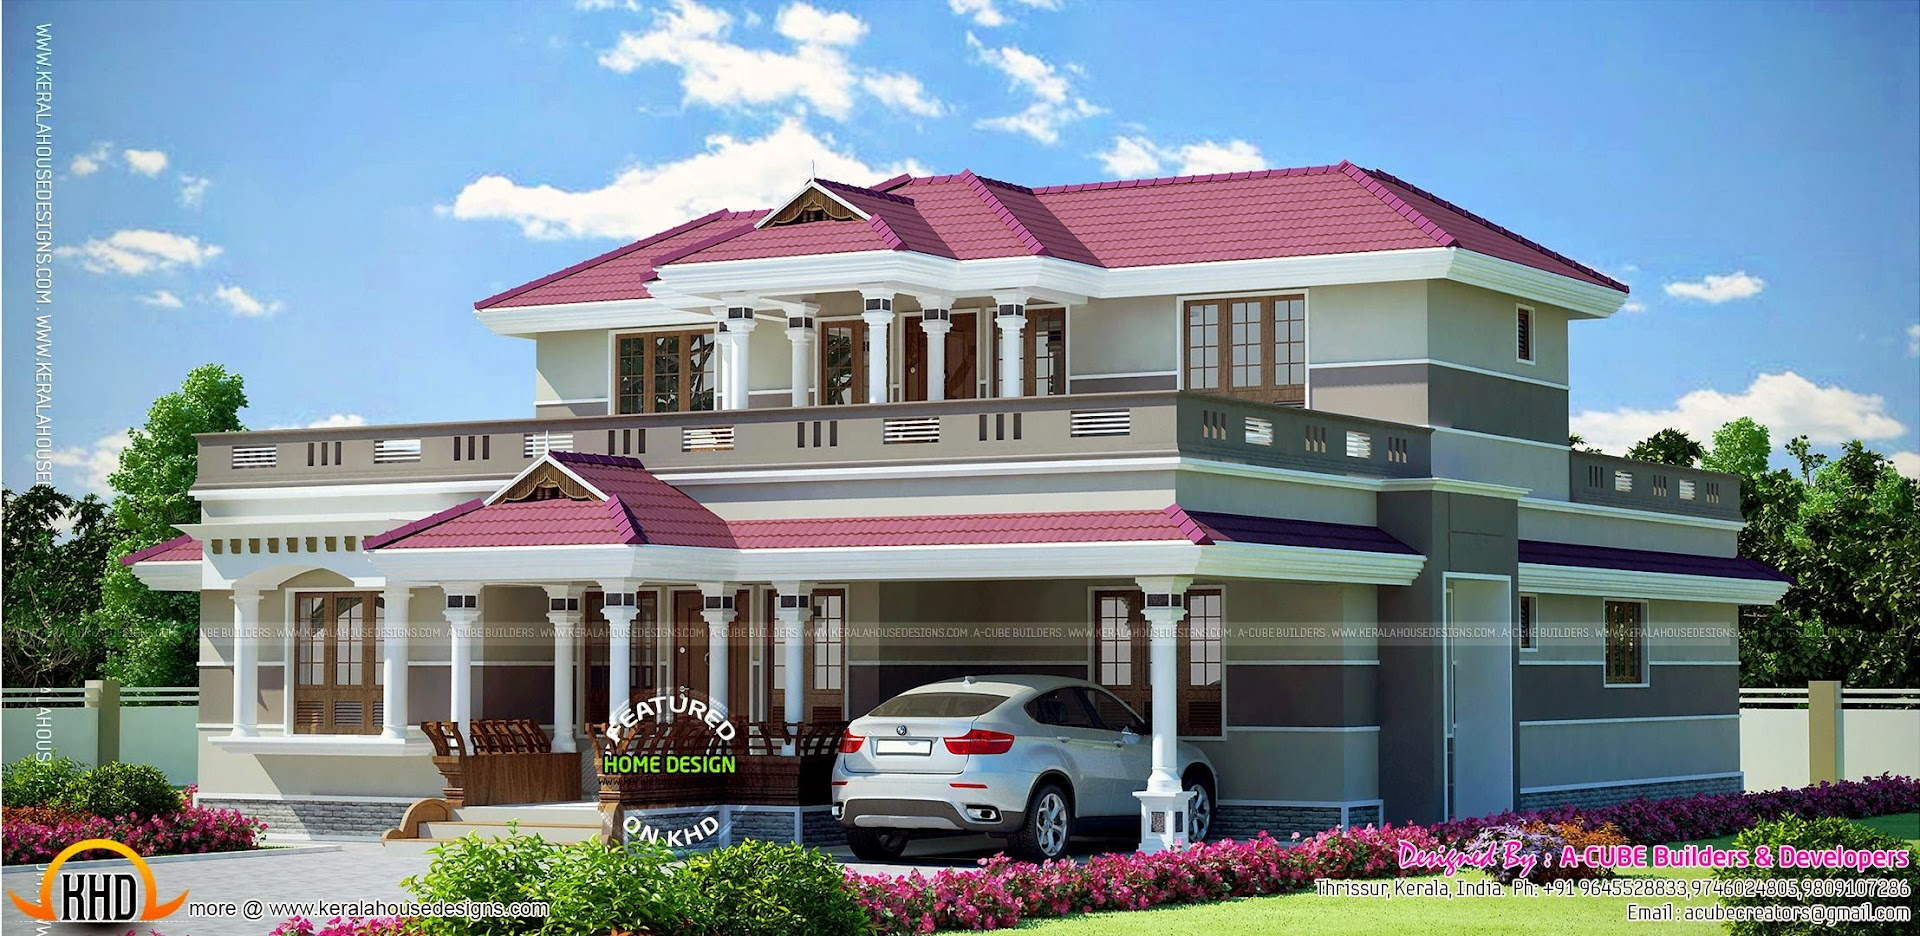 Grand Kerala Home Design Kerala Home Design And Floor Plans